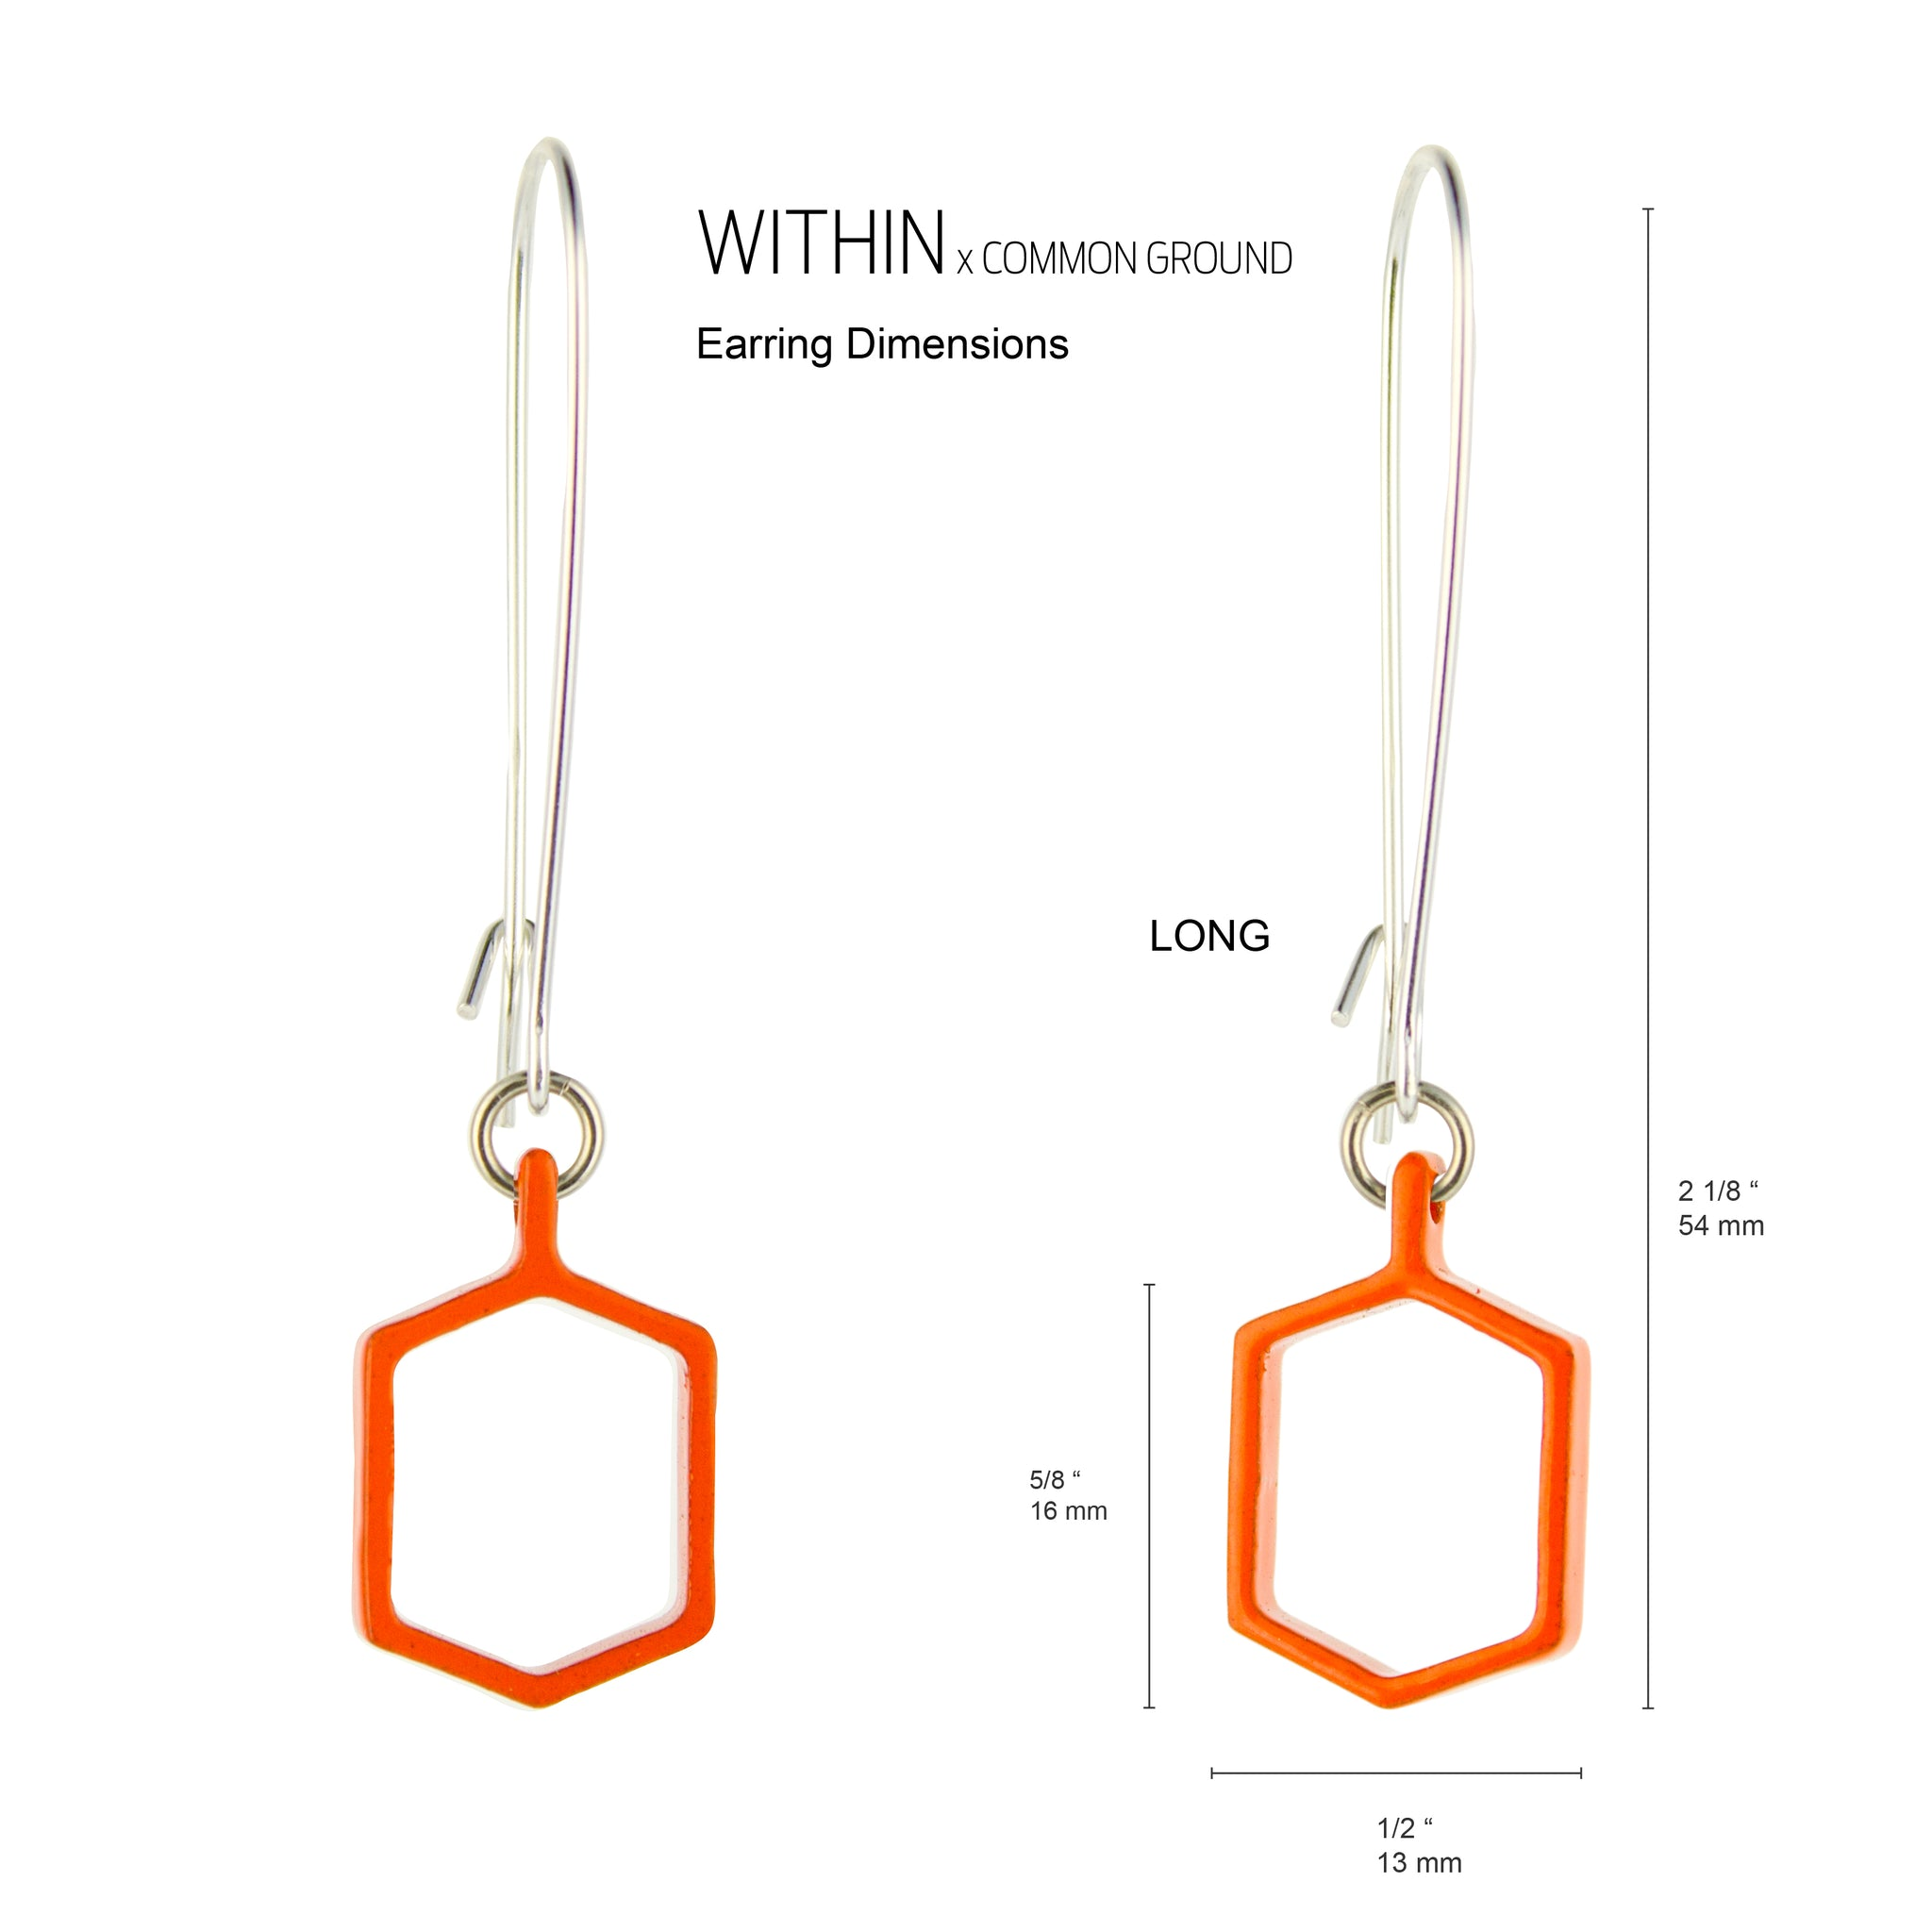 Vibrant_Orange - WITHIN x COMMON GROUND Earring Flat View